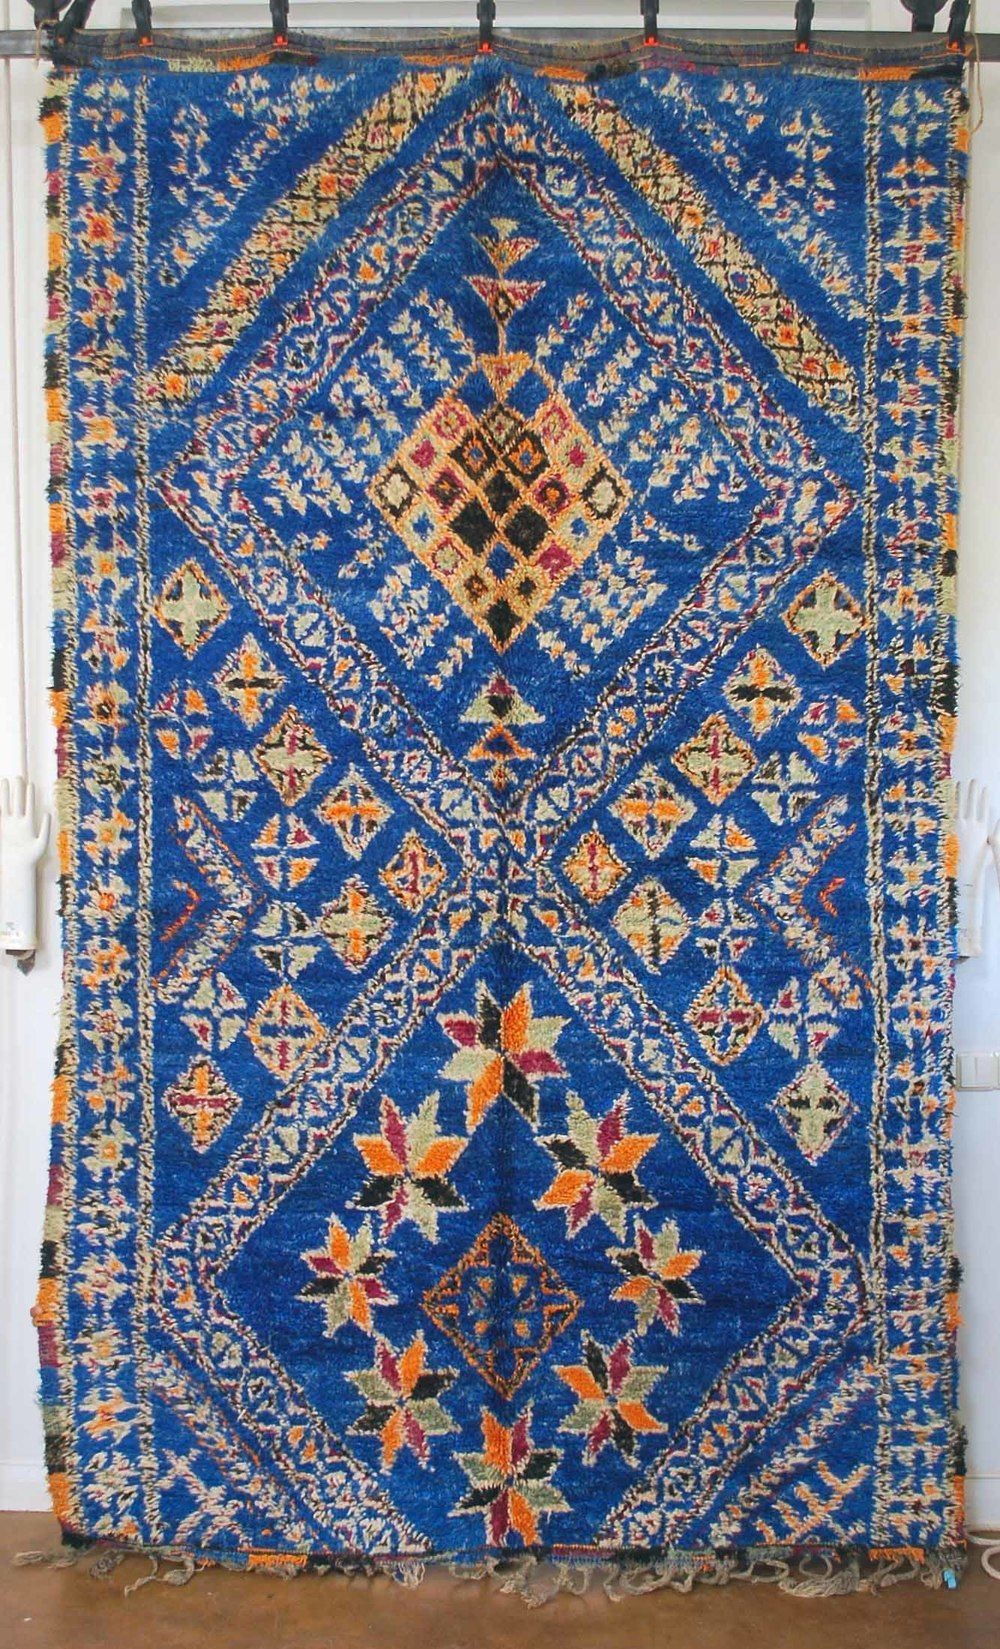 So Rare Vintage Moroccan Blue Beni Ouarain Rug From The